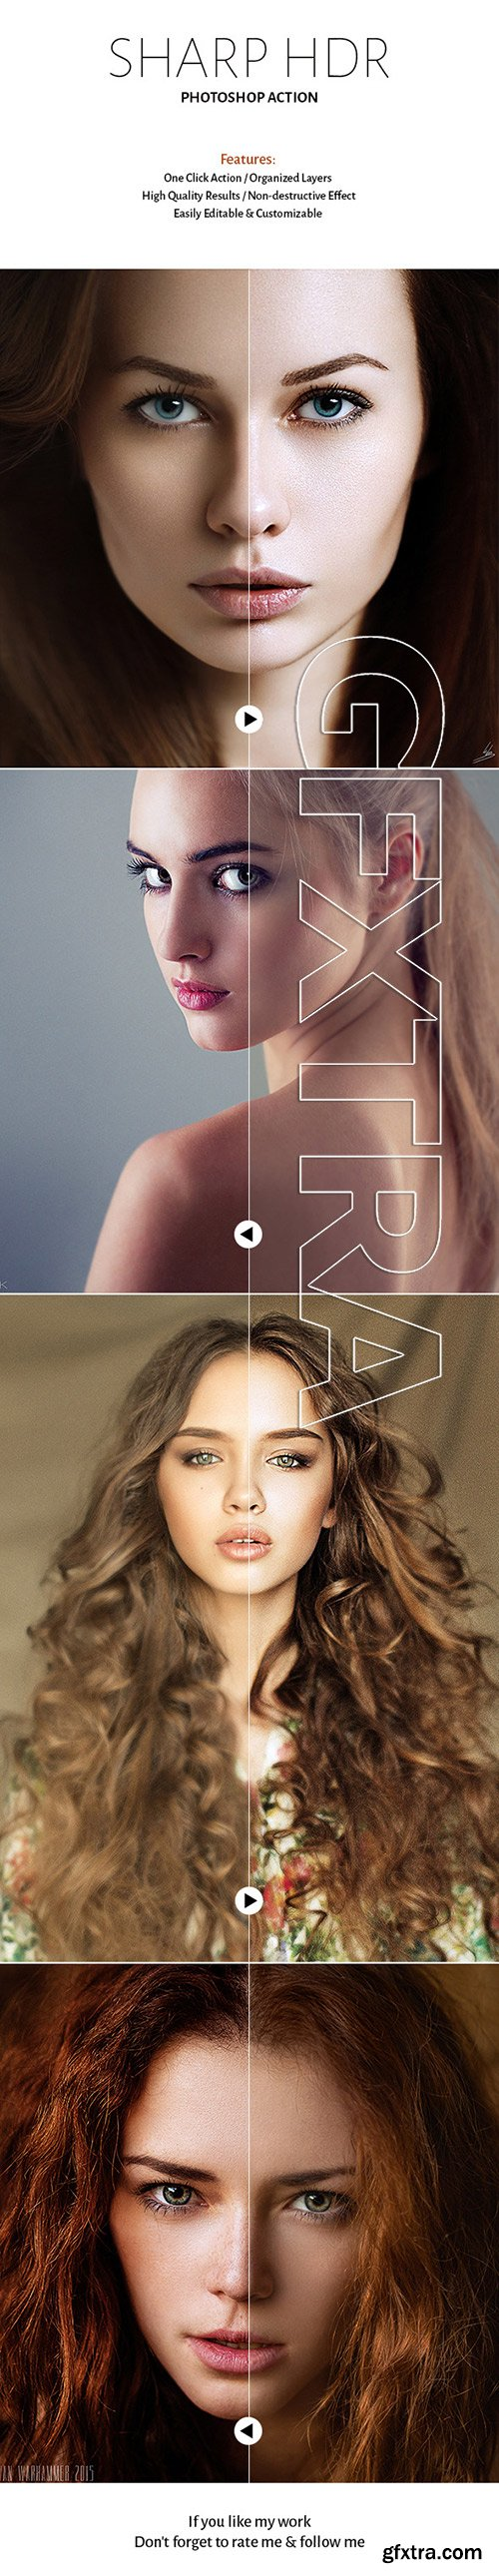 GraphicRiver - Sharp HDR Action 11477630